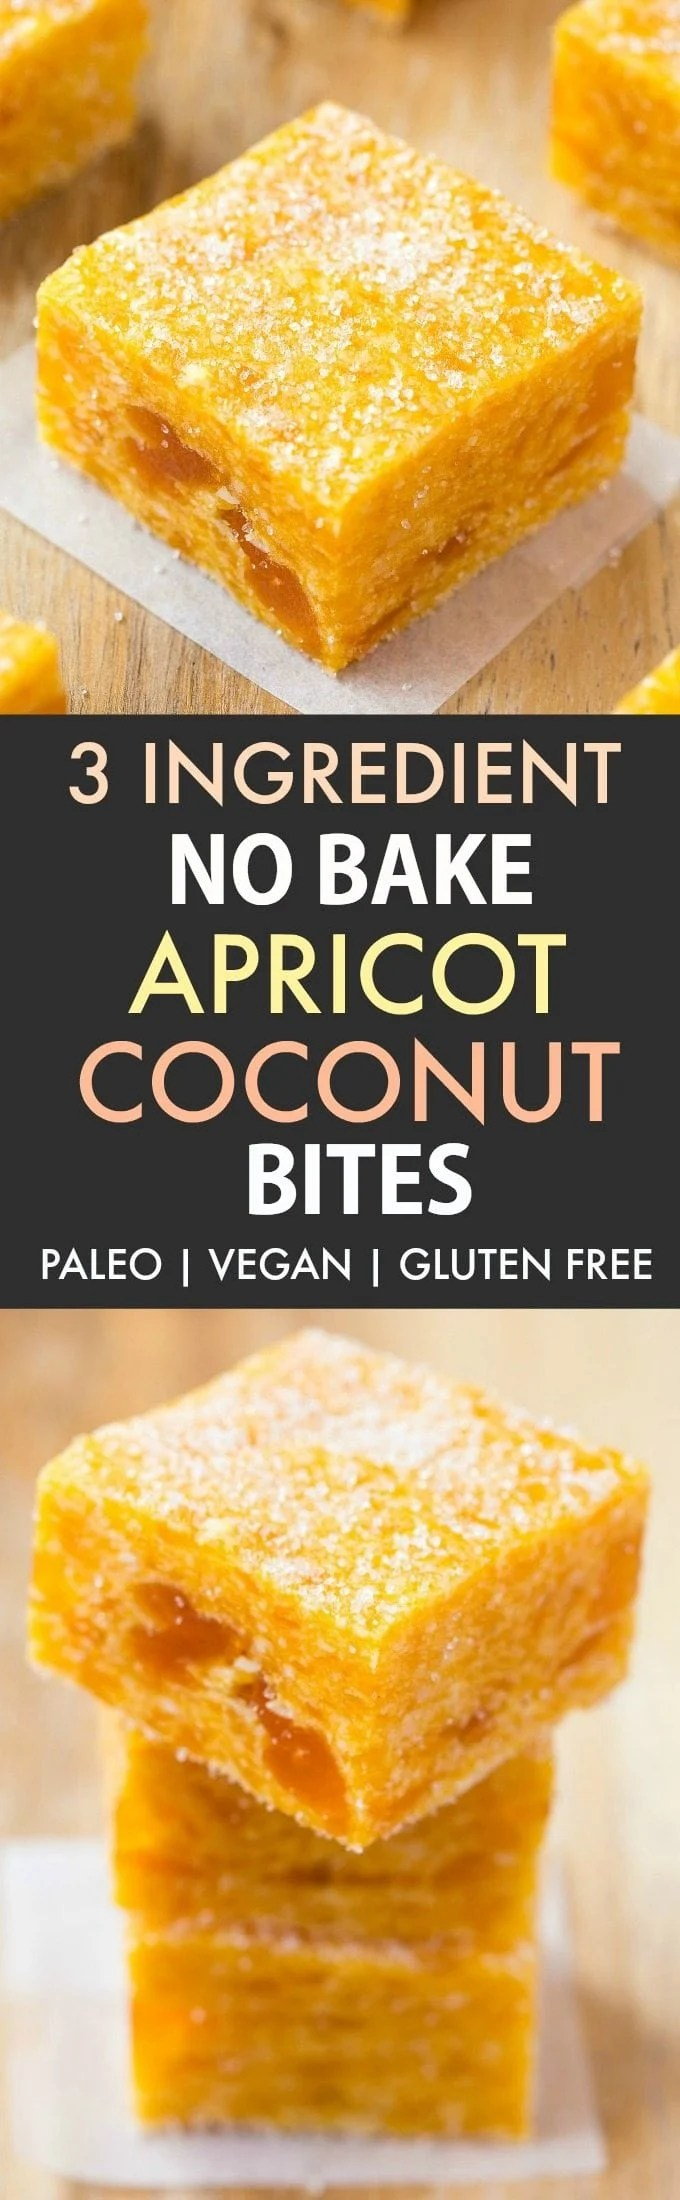 3 Ingredient No Bake Apricot Coconut Bites (Paleo, Vegan, Gluten Free) - Quick and easy apricot coconut energy bite recipe made with 3 ingredients and no sugar! {v, gf, p, df}- thebigmansworld.com